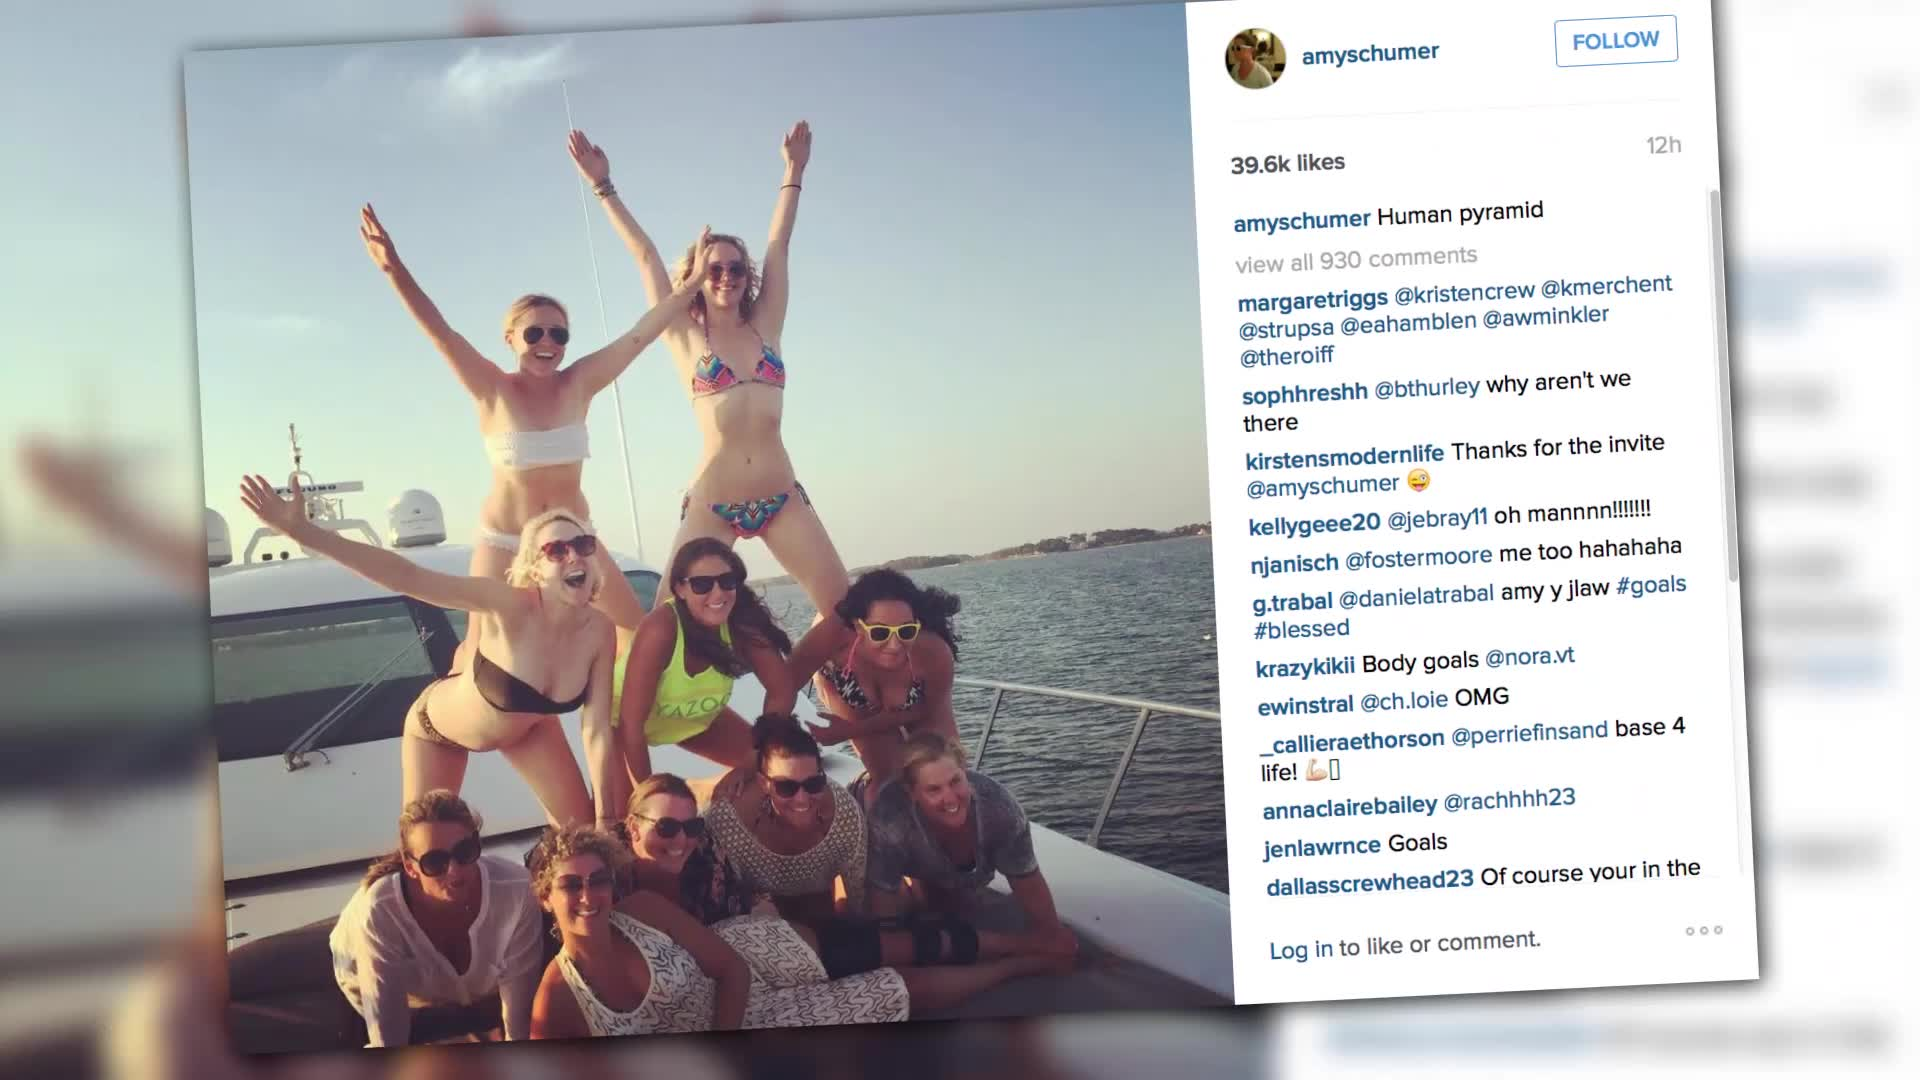 Bikini-Clad Jennifer Lawrence Vacations with Amy Schumer